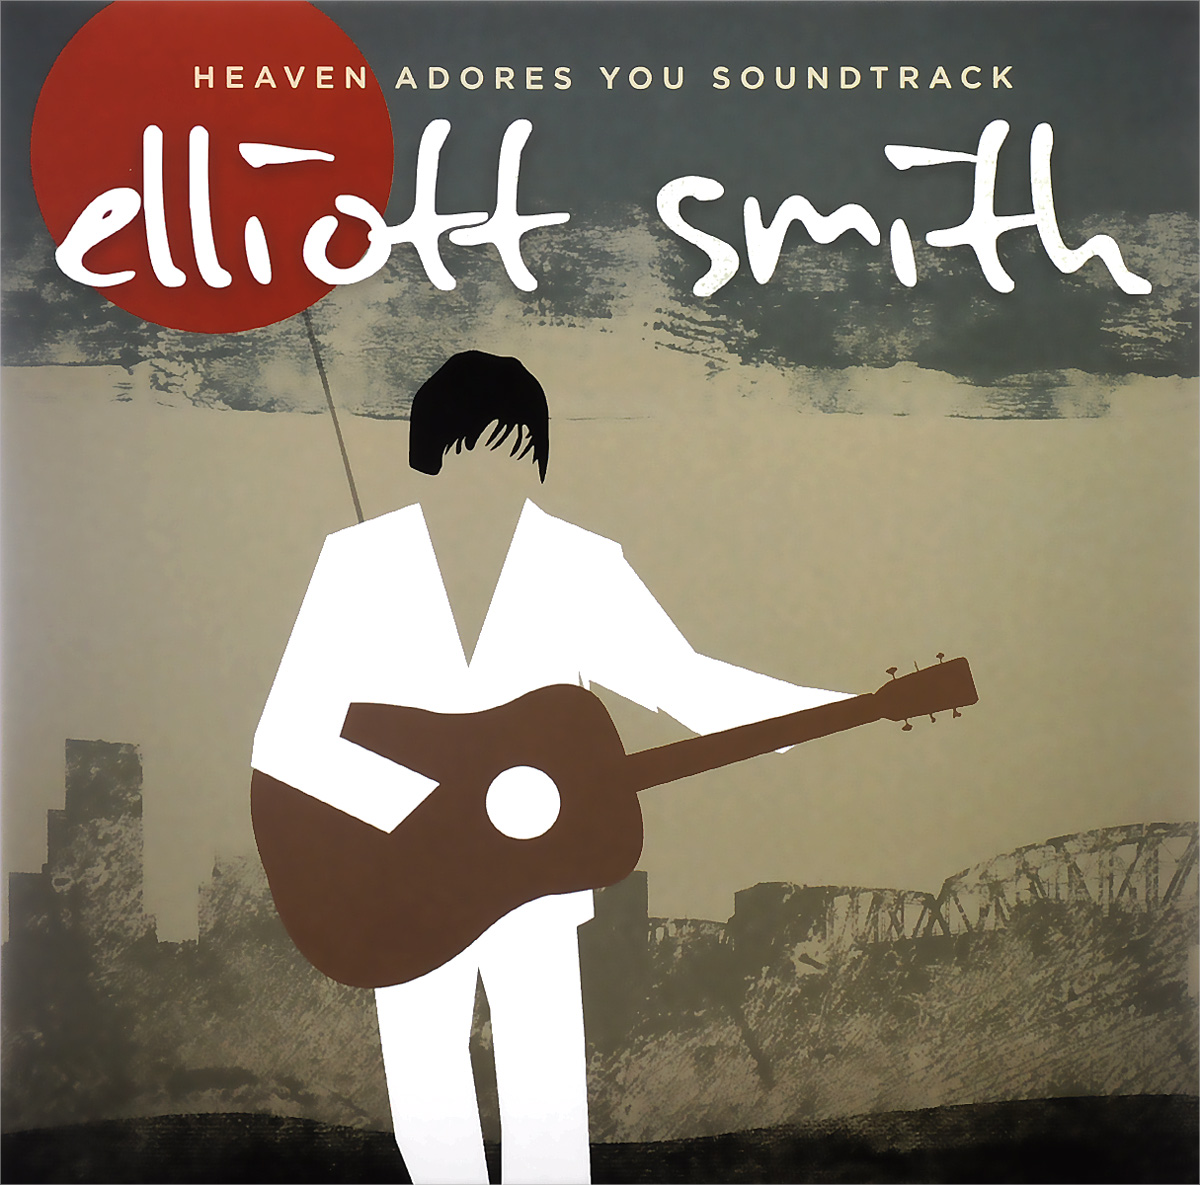 "Эллиот Смит,""Heatmiser"",Neil Gust,Conan O'Brien Elliott Smith. Heaven Adores You. Soundtrack (2 LP)"